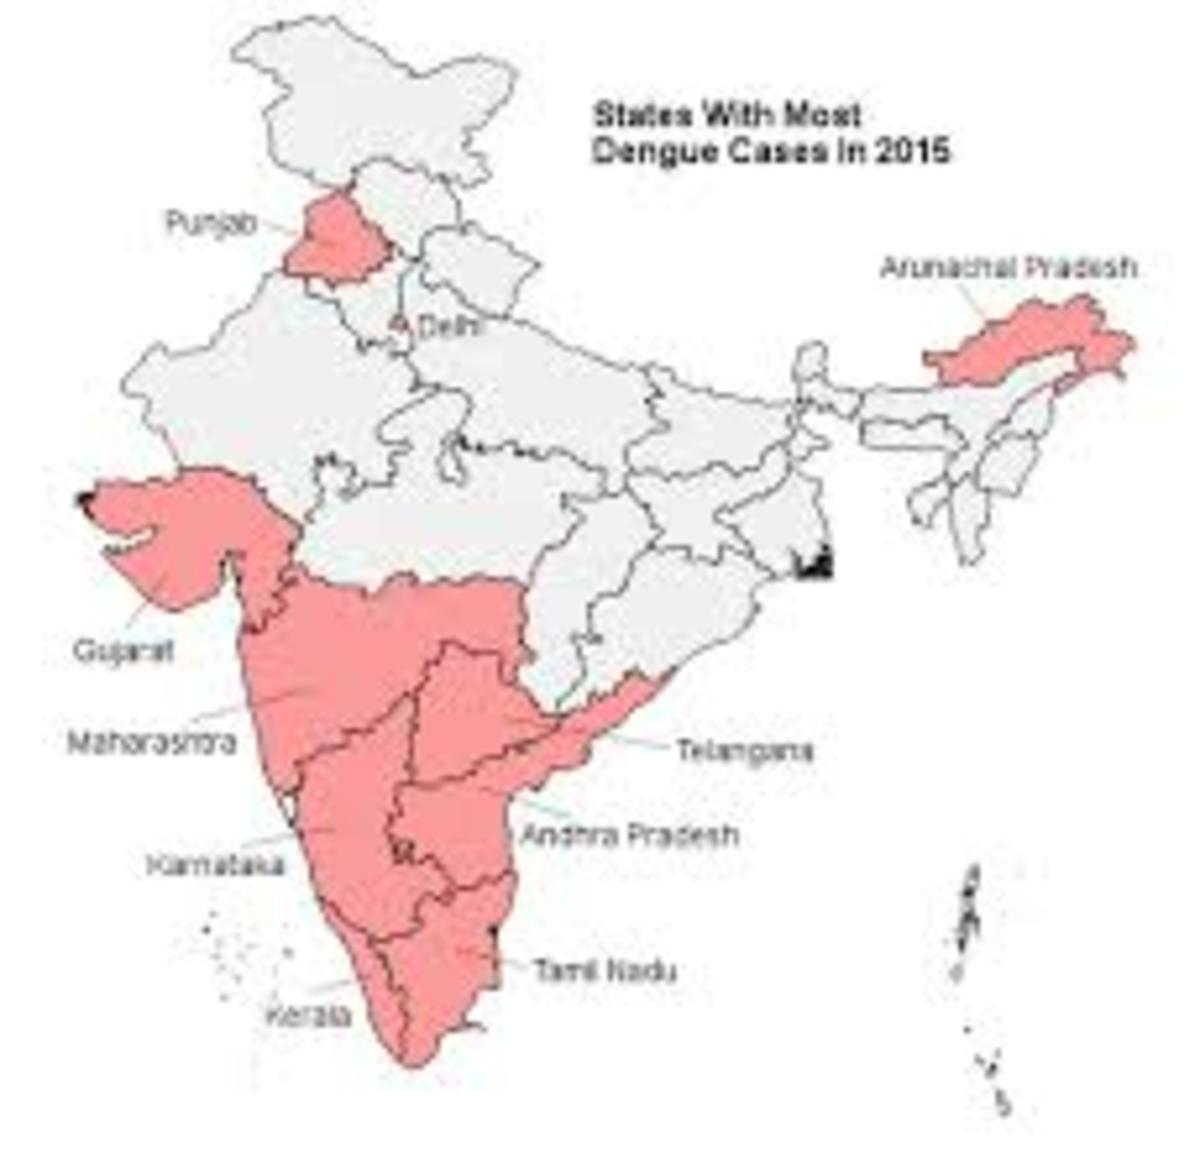 States with most Dengue cases in India in 2015